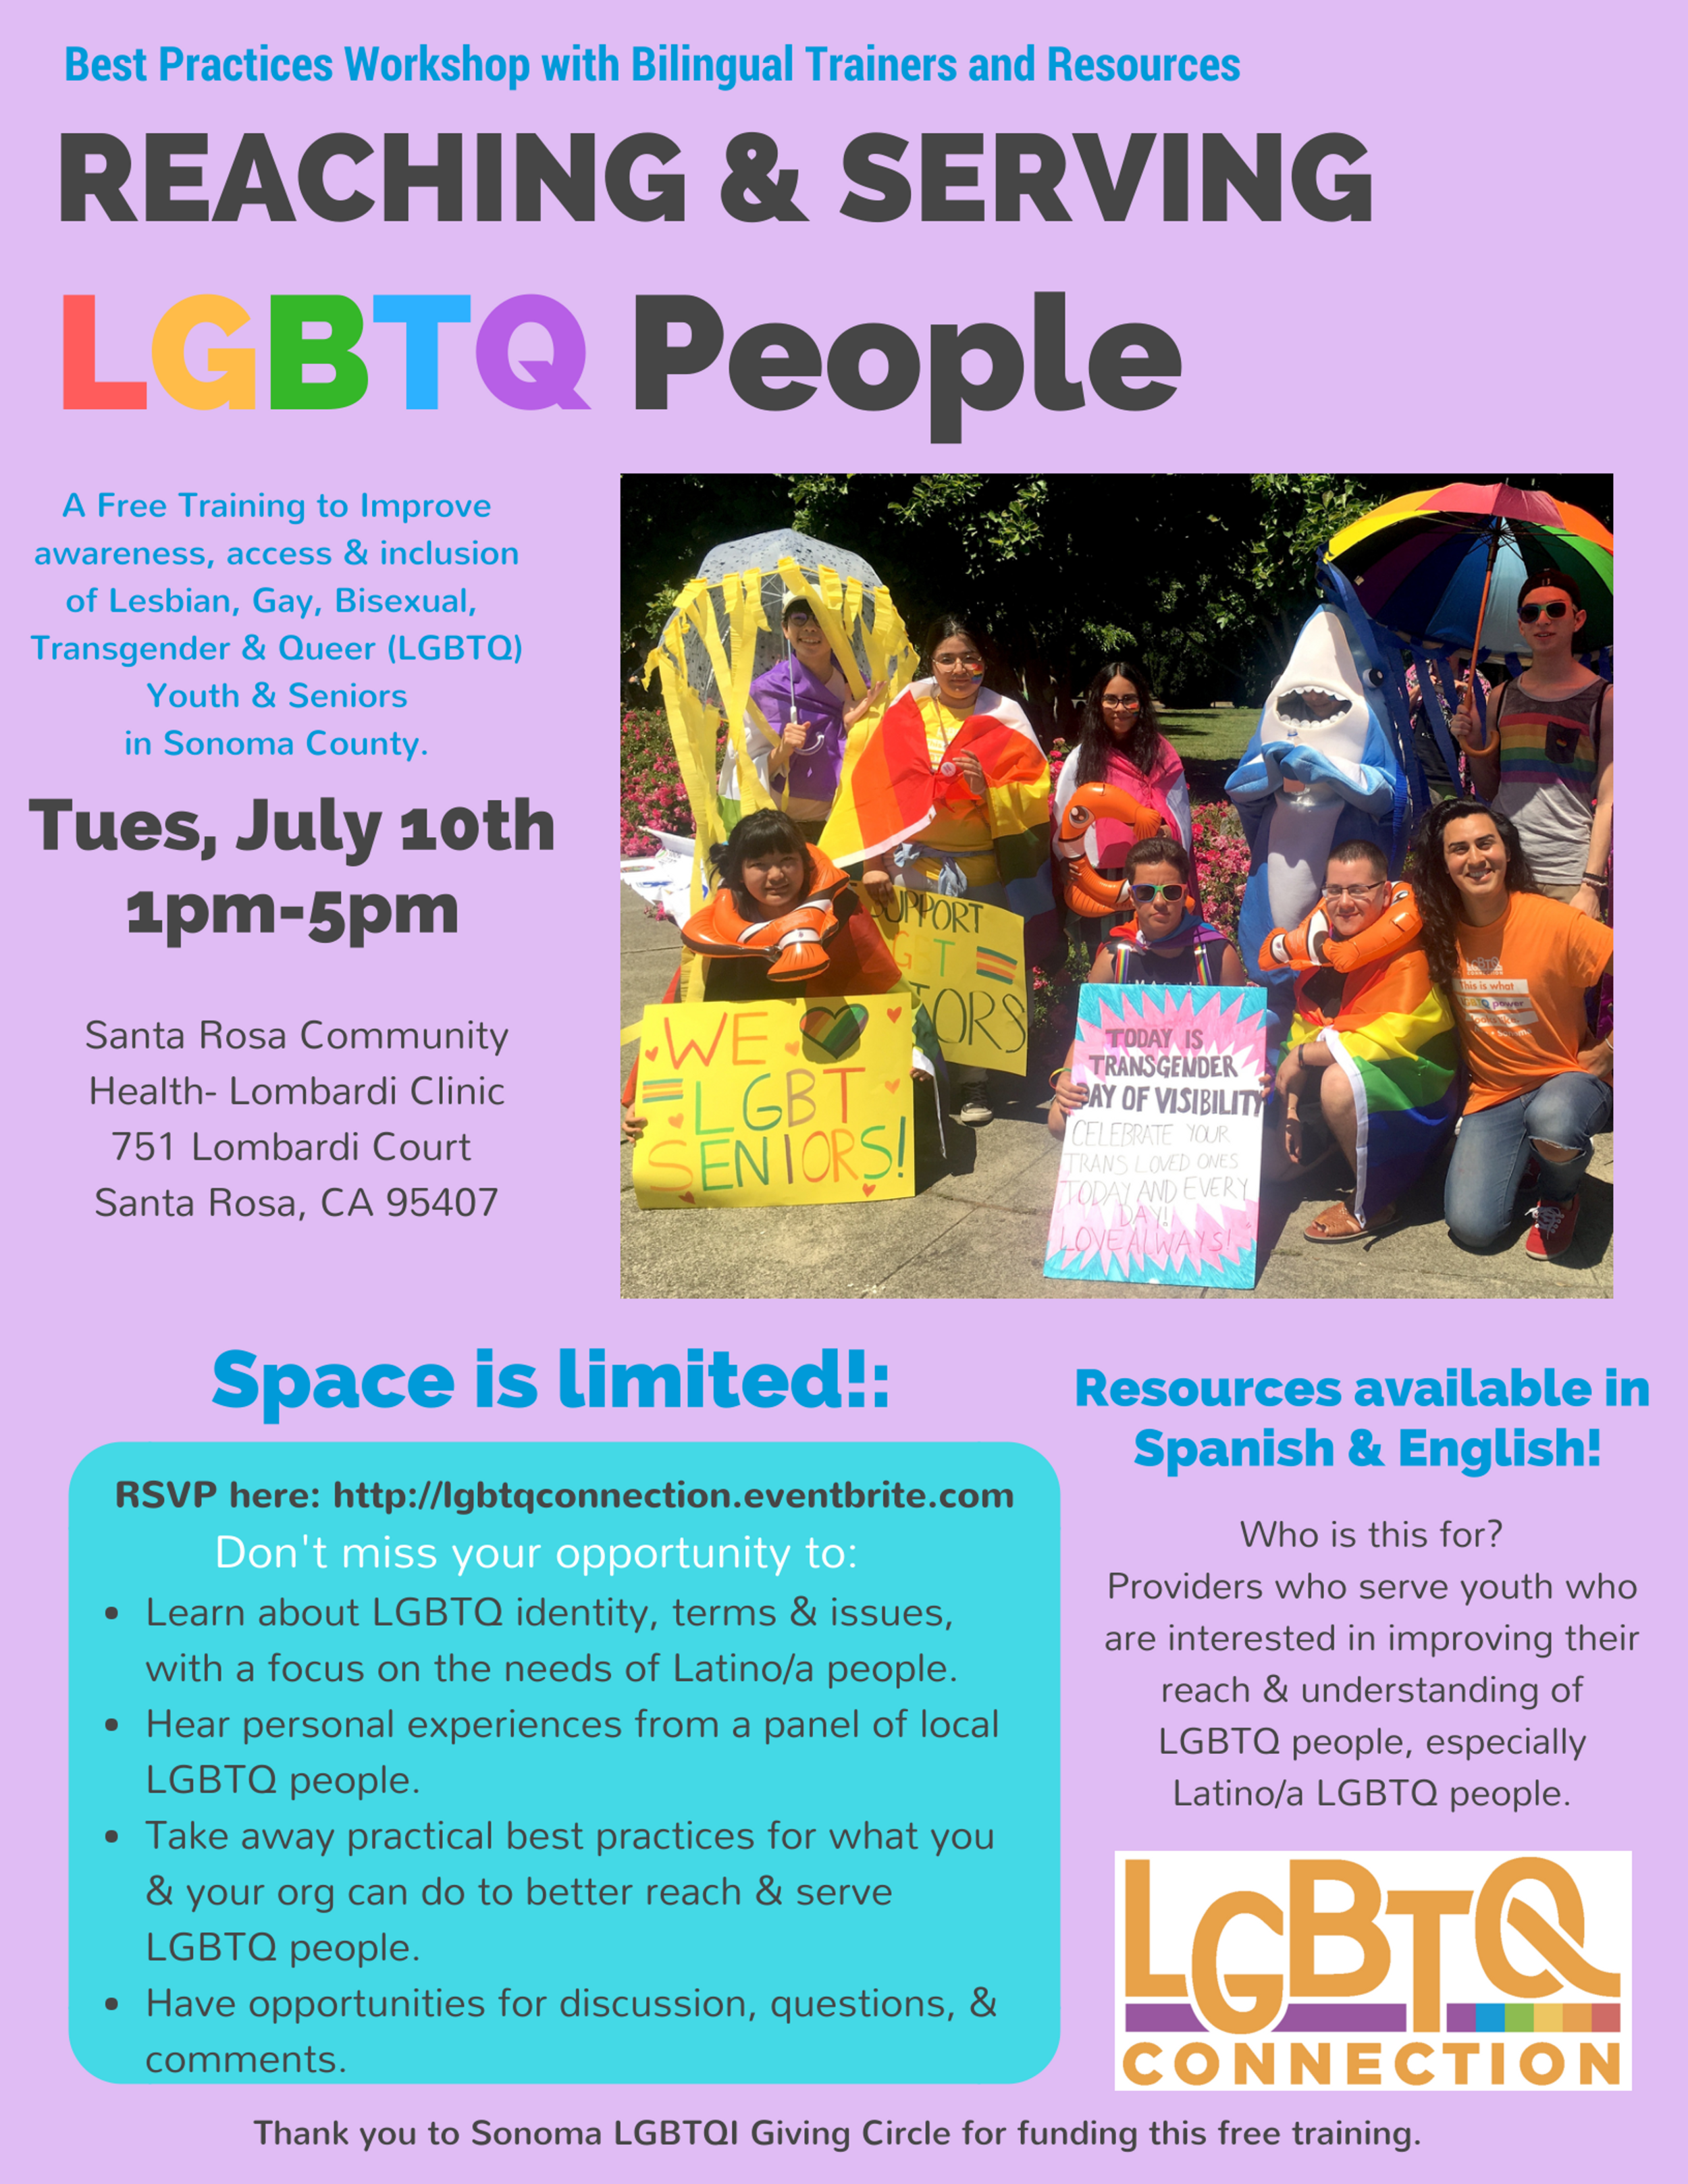 July 10 2018 LGBTQ Best Practices Workshop Flyer for Sonoma County Community.png